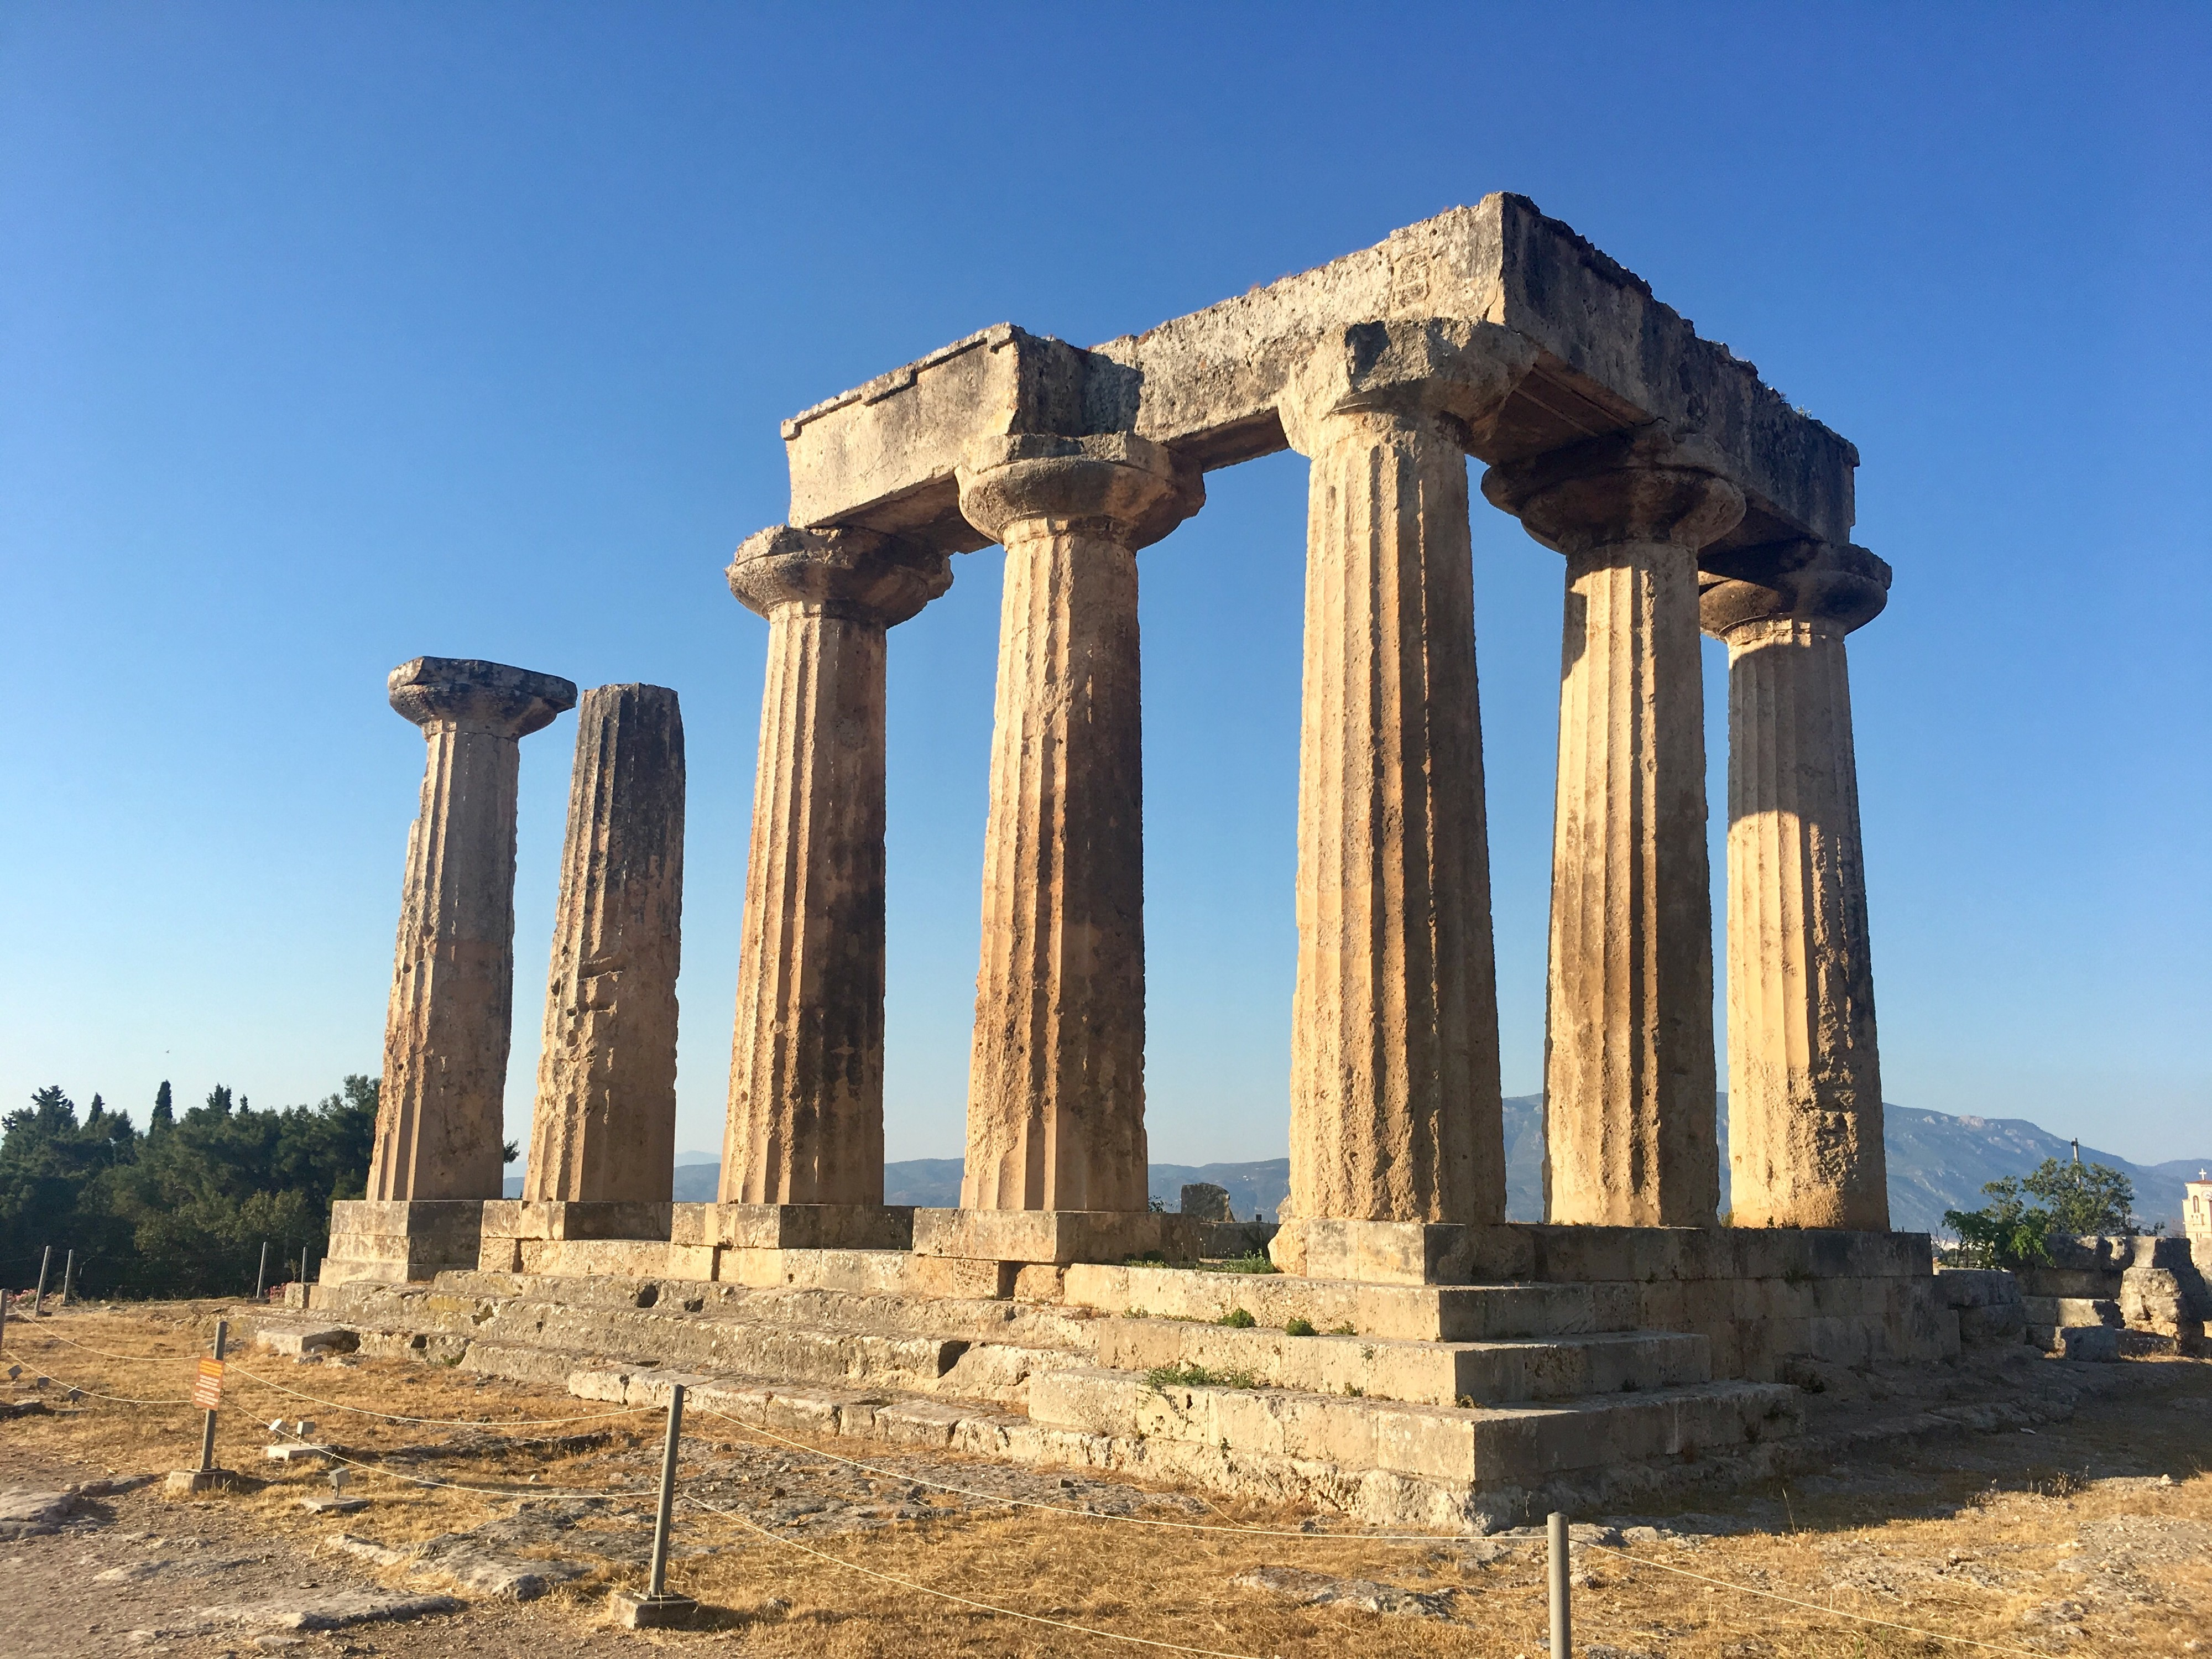 Close-up of the Temple of Apollo in Corinth